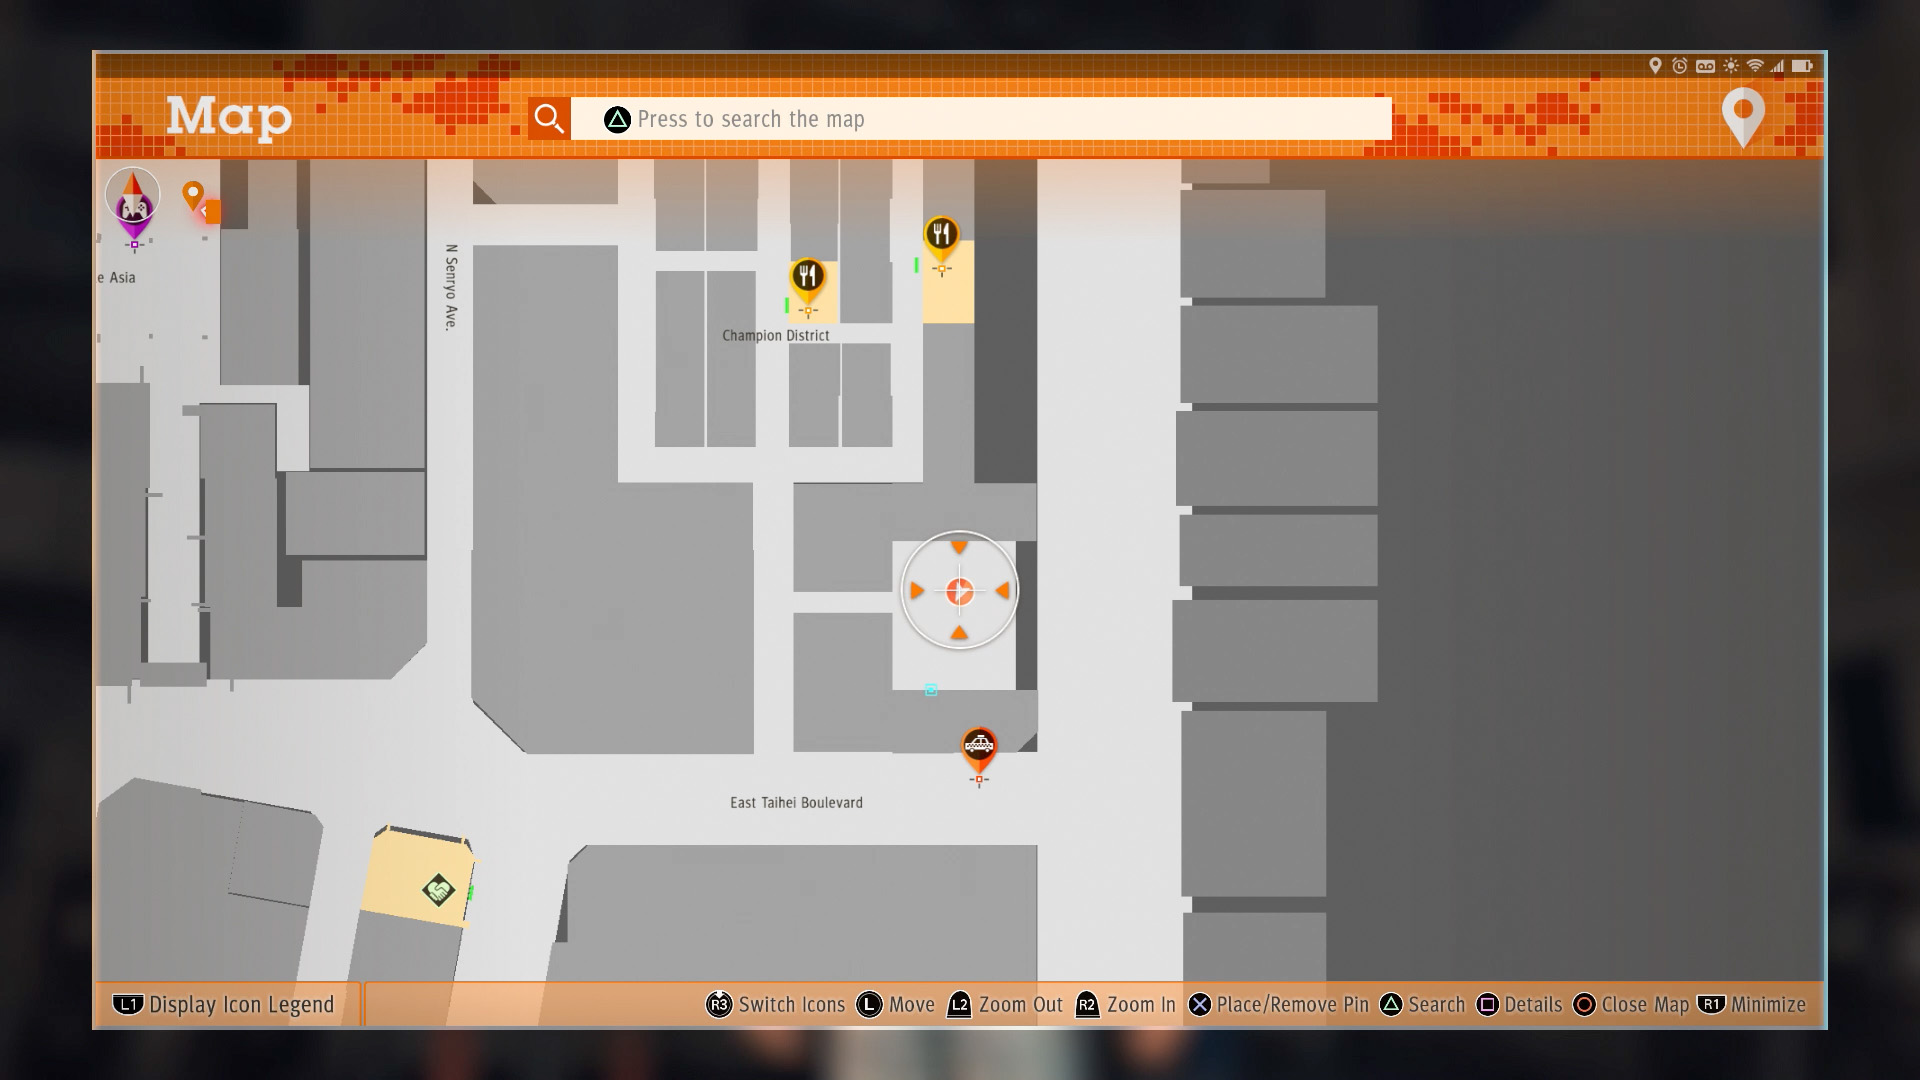 Judgment skill QR code locations and map - Polygon